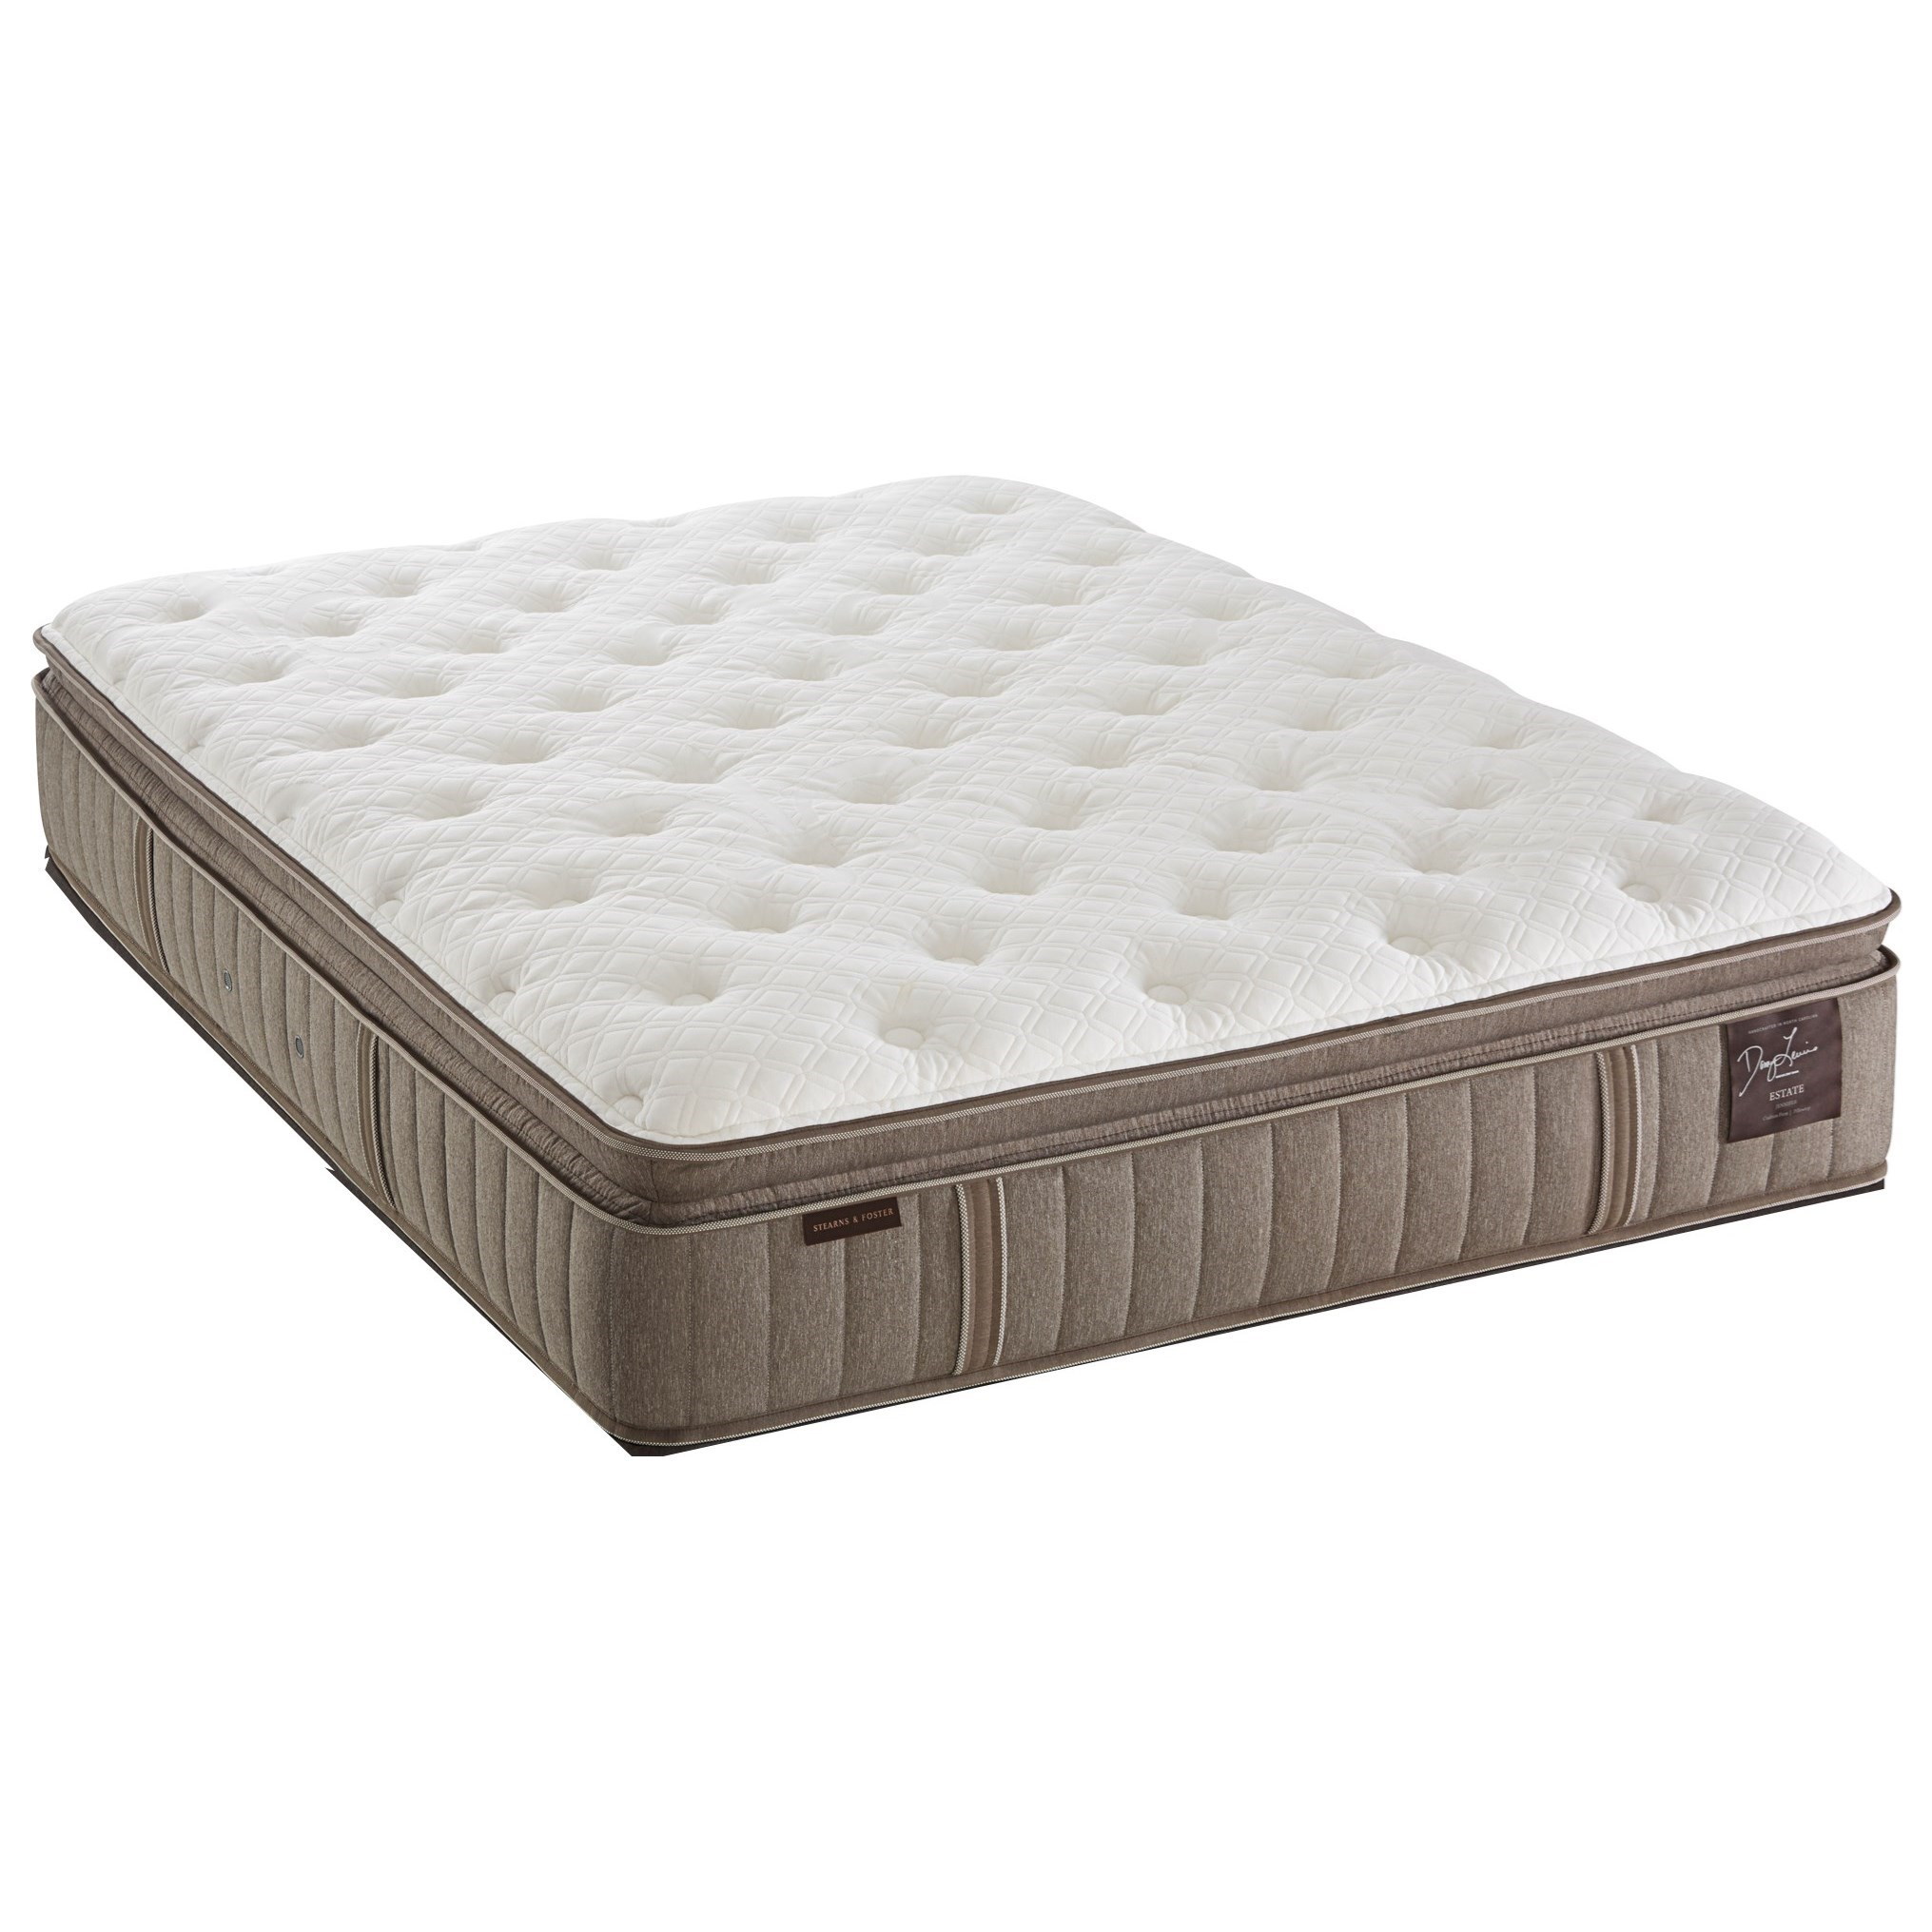 Stearns & Foster Scarborough Cal King Plush Euro PT Mattress - Item Number: PlushEPT-CK